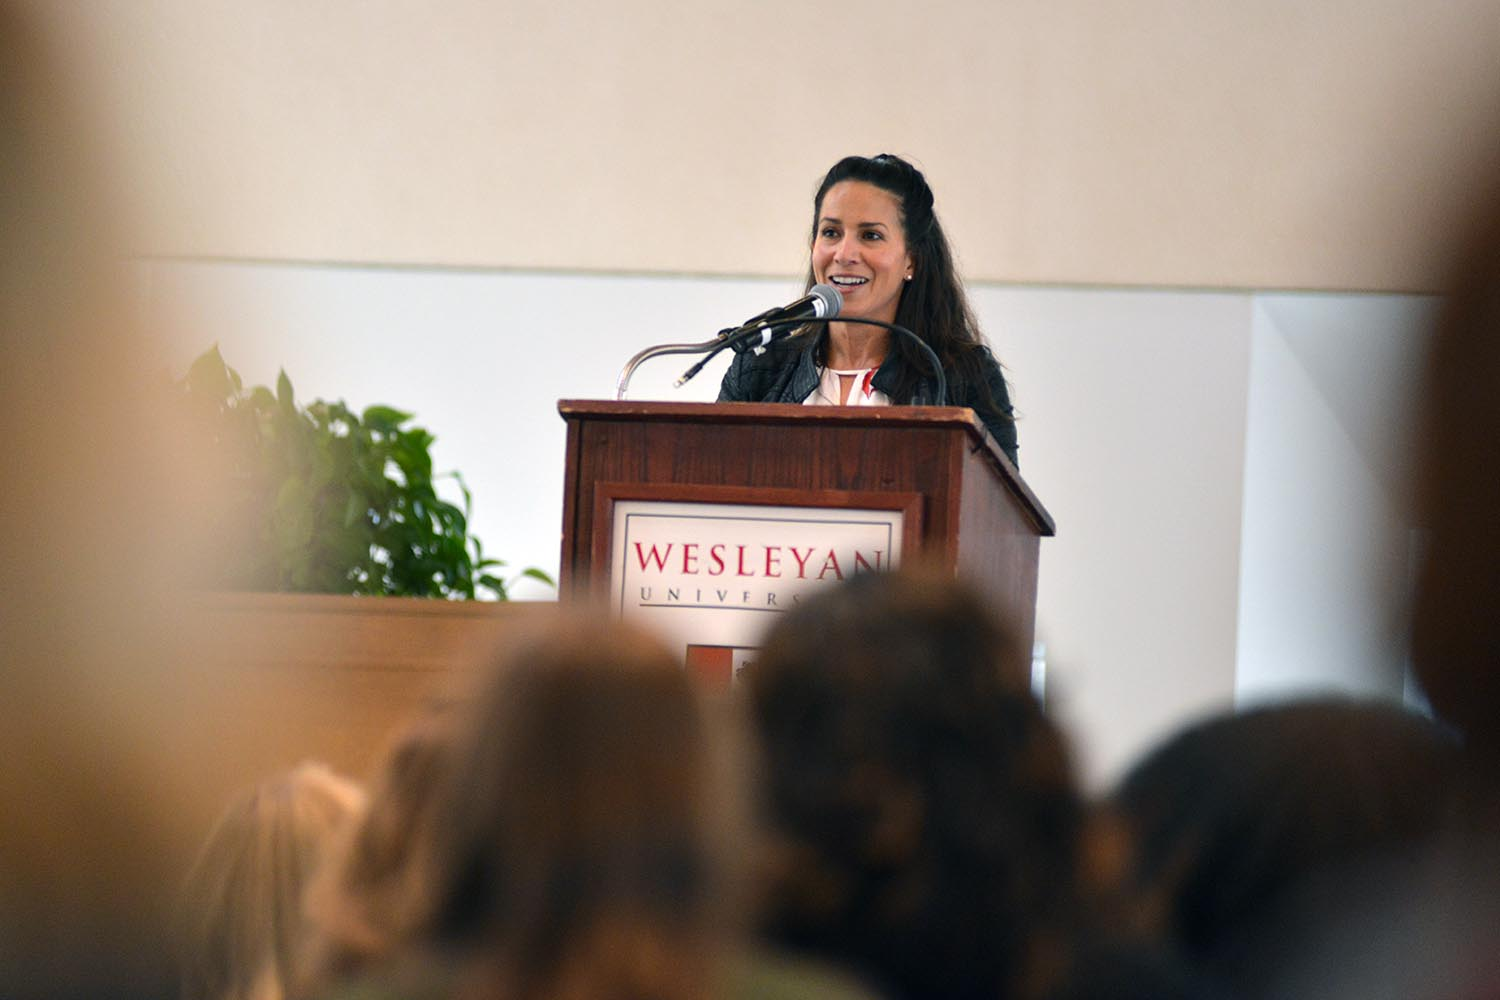 Wesleyan alumnae and New York Mets public address announcer Marysol Castro '96 delivered the WesFest Alumni Keynote Address on April 11.Castro, the first Latina public address announcer in the entire MLB, also the host of The Weekly Good on OGTV and the wildly popular CTBites Hot Dish podcast. In 2010, Castro anchored weather at CBS's The Early Show. She spent two years at ESPN as a host and sideline reporter for the Little League World Series, Invictus Games,and Premier Boxing Champions.